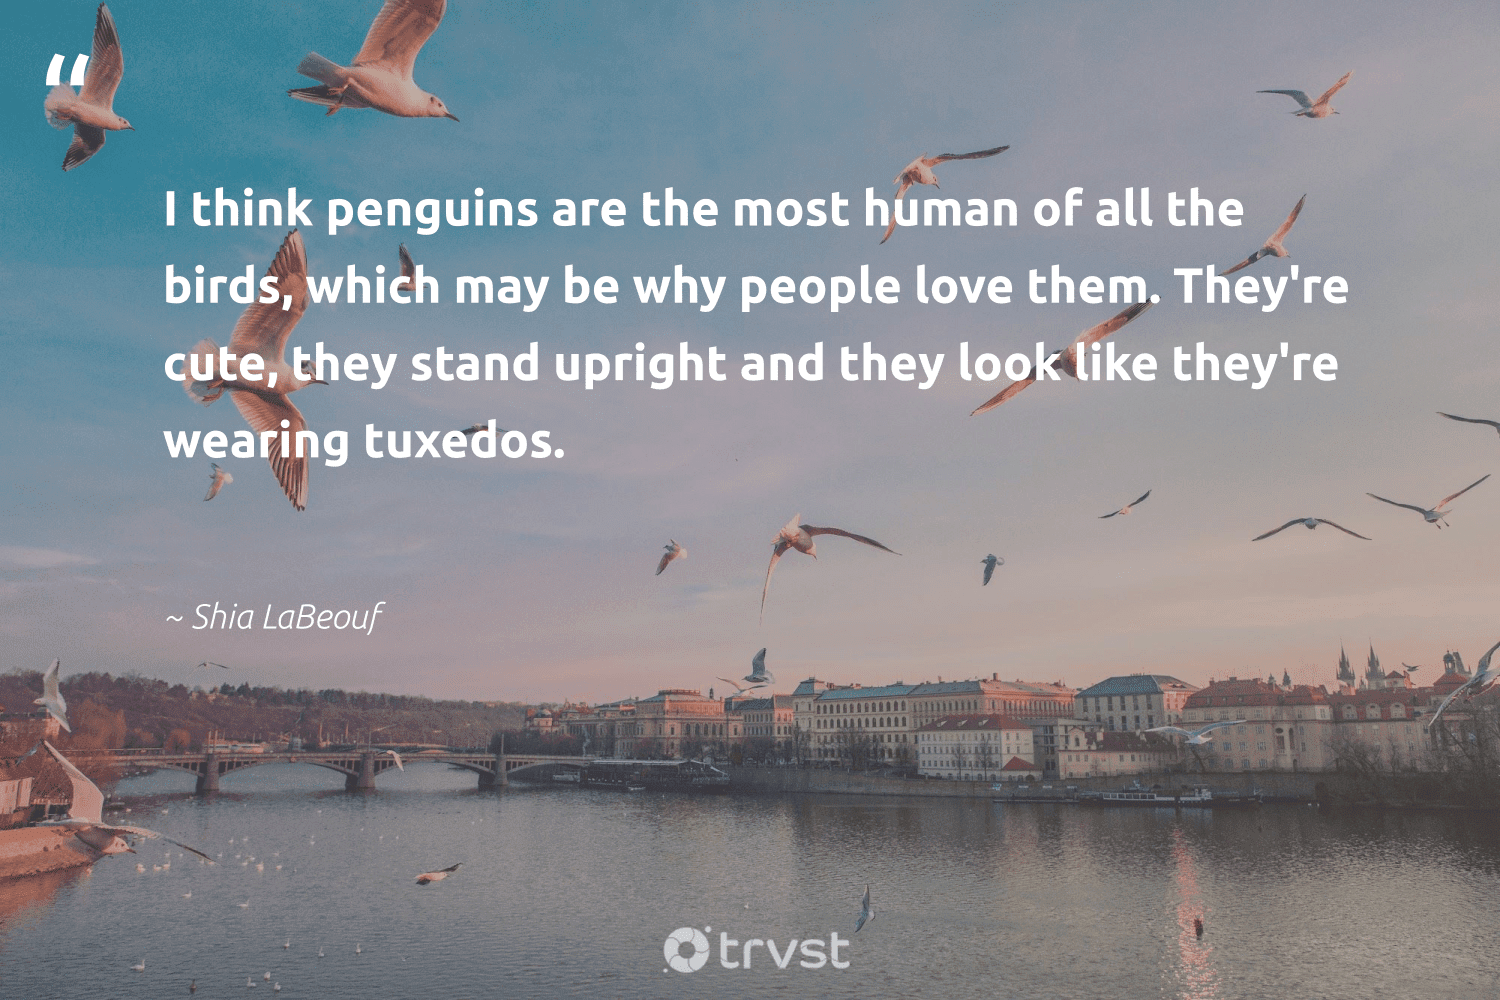 """""""I think penguins are the most human of all the birds, which may be why people love them. They're cute, they stand upright and they look like they're wearing tuxedos.""""  - Shia LaBeouf #trvst #quotes #love #birds #bird #geology #takeaction #nature #dotherightthing #forscience #collectiveaction #biology"""